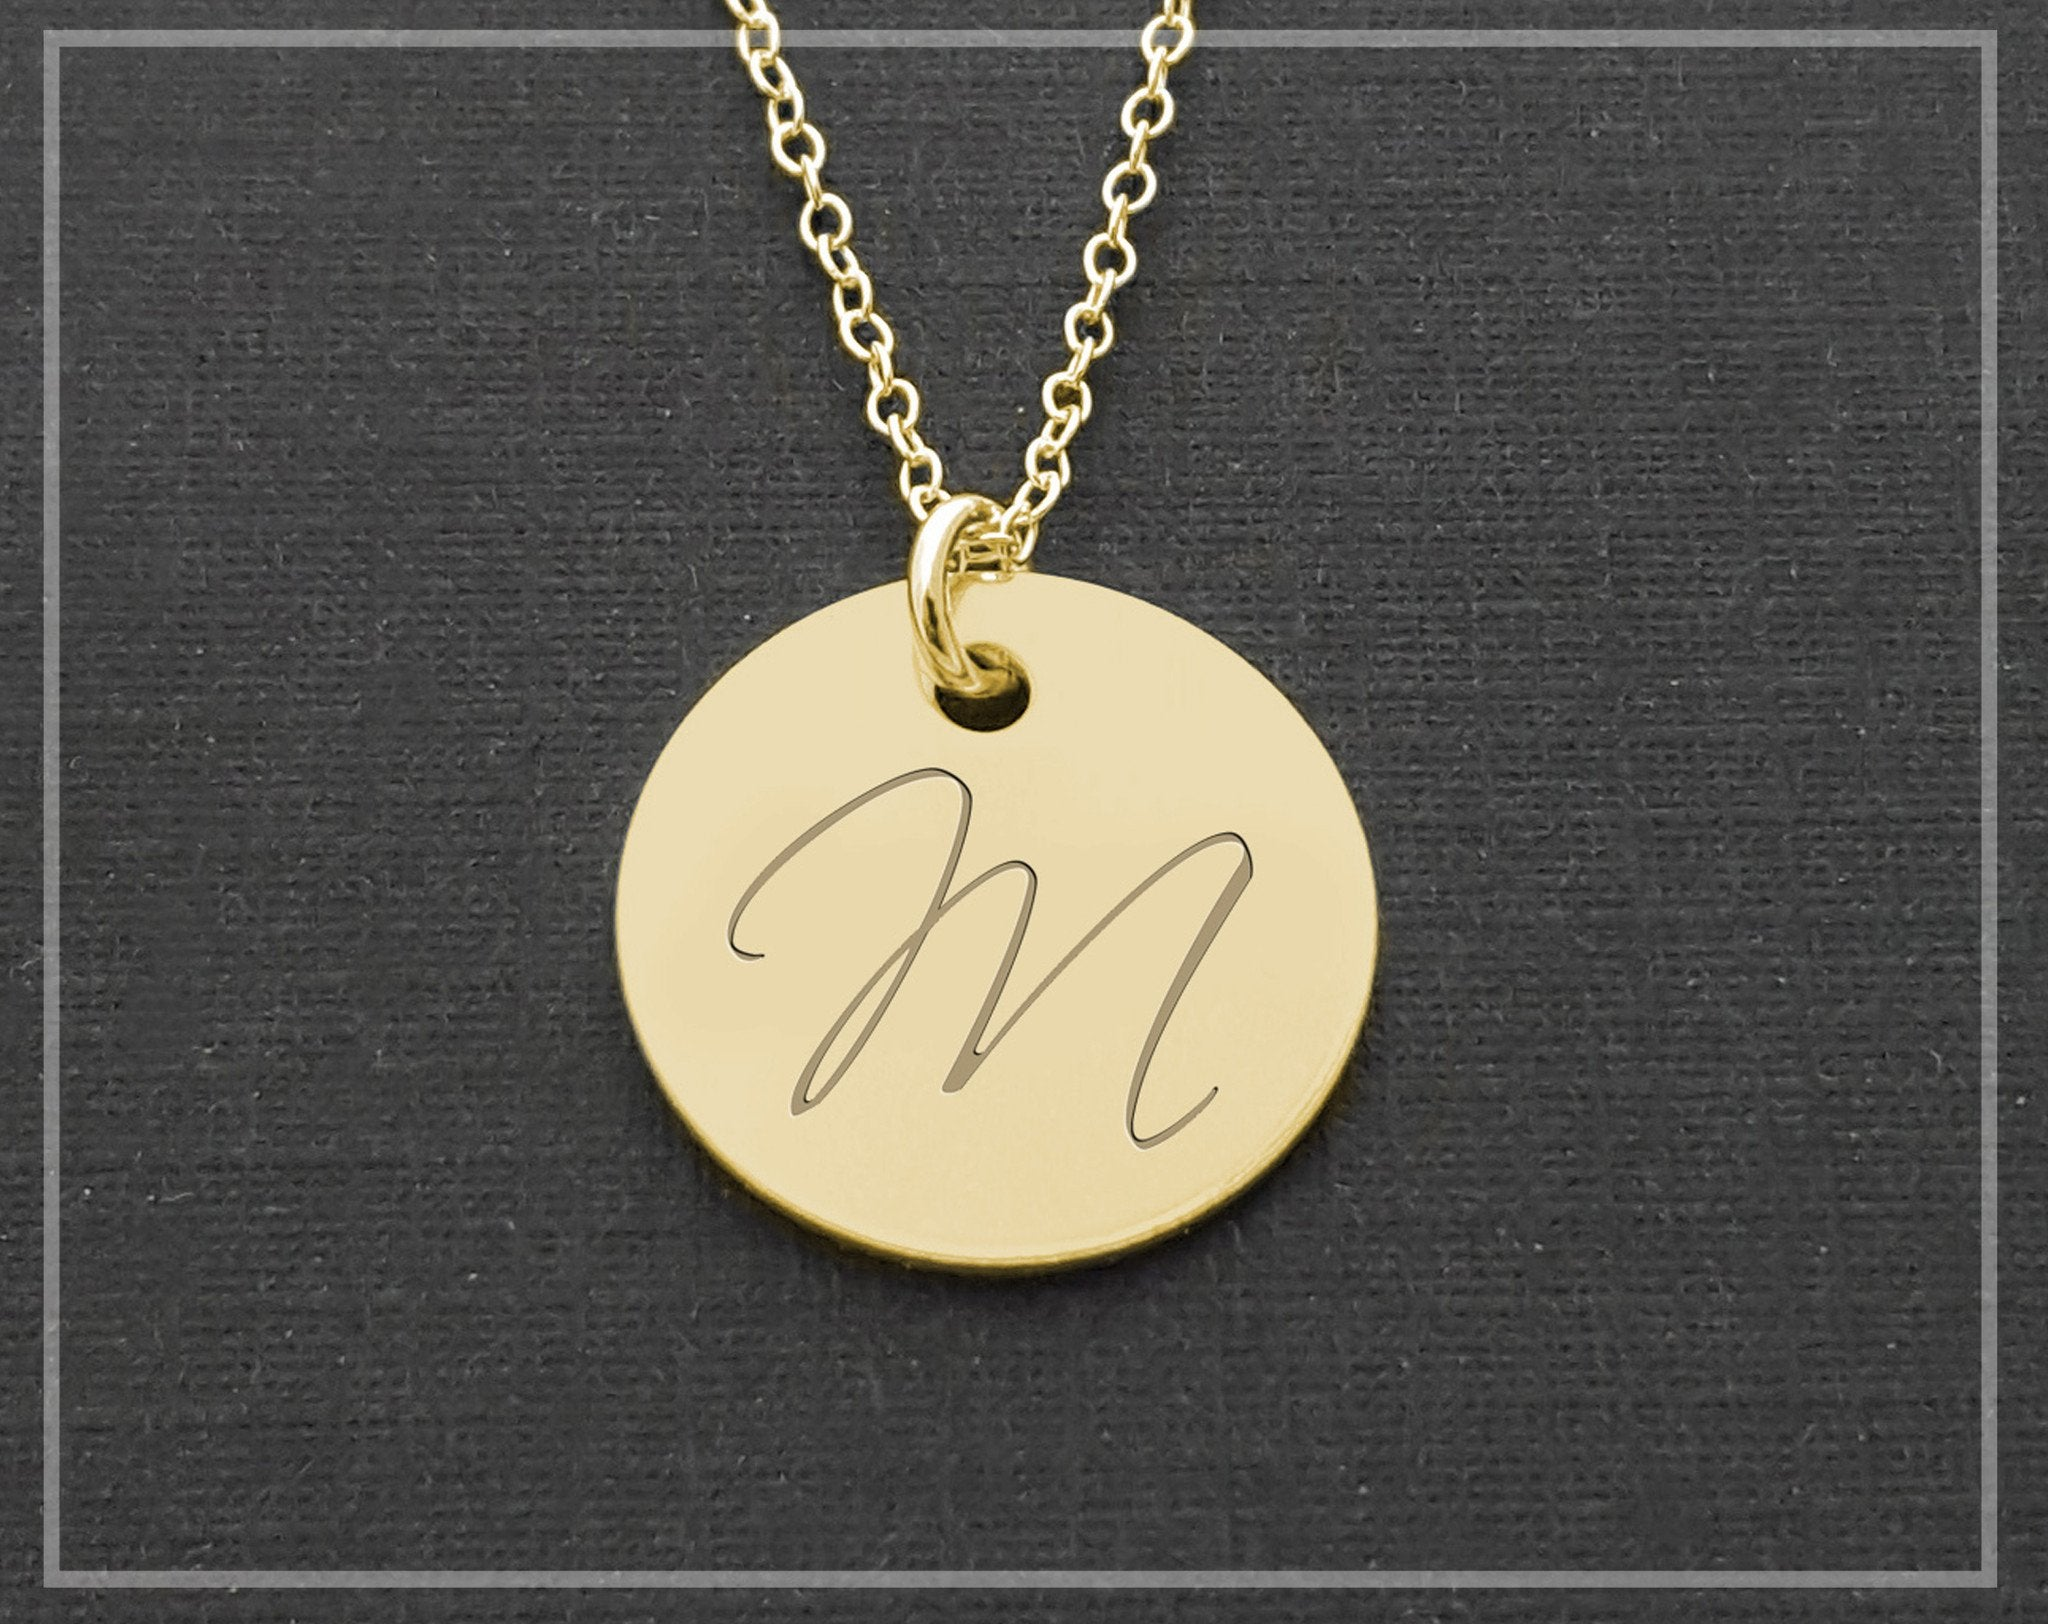 14k gold initial necklace sincerely silver 14k gold initial necklace 14k gold initial necklace aloadofball Choice Image